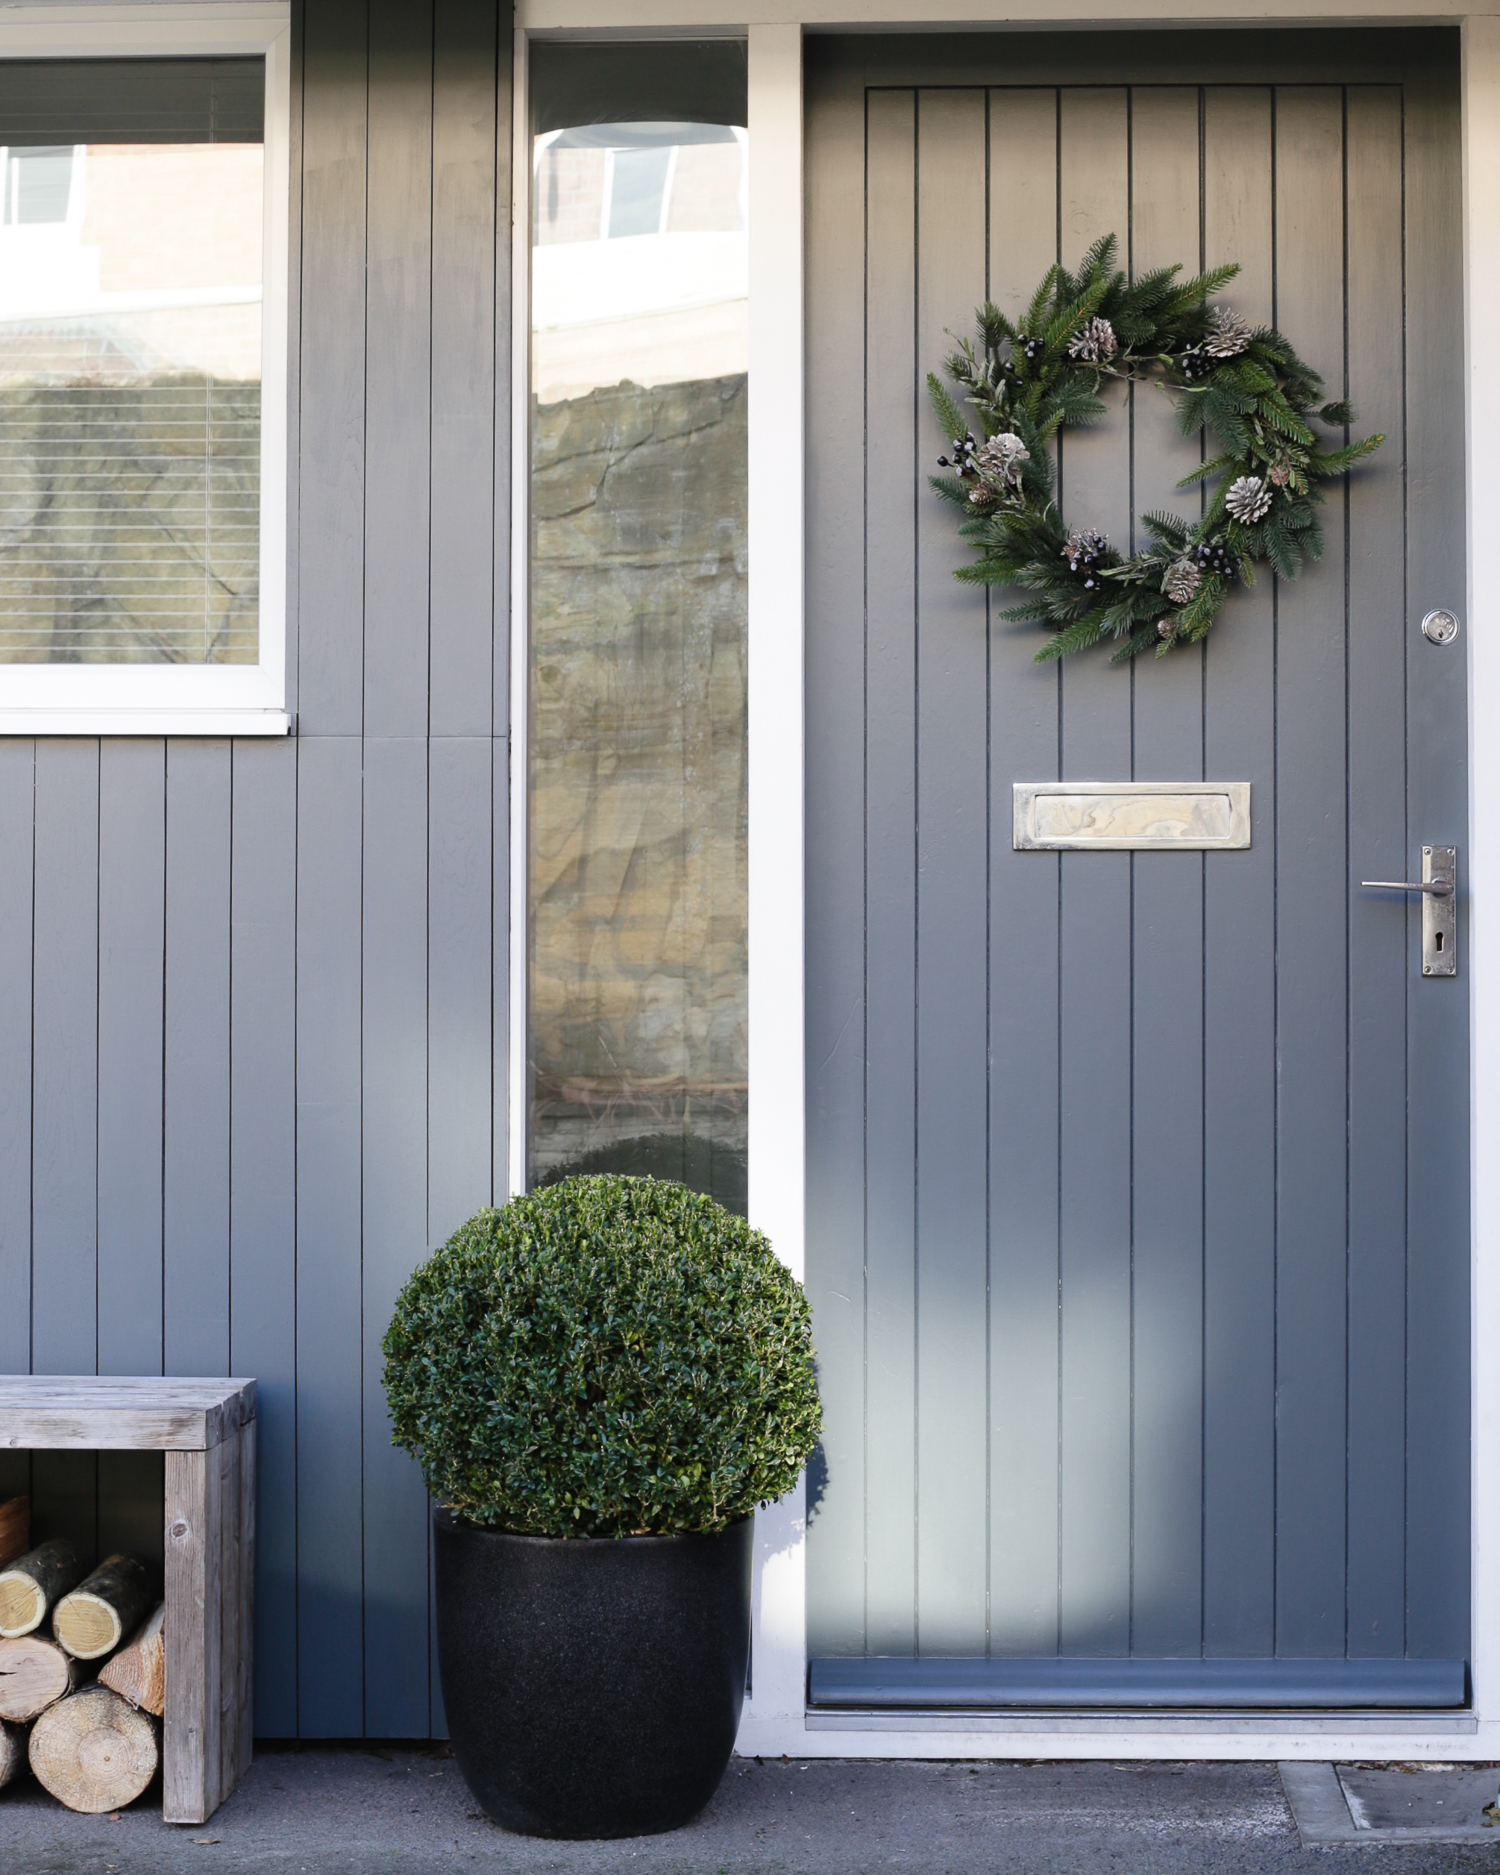 Door wreath by The White Company | Design Hunter-1-2.jpg